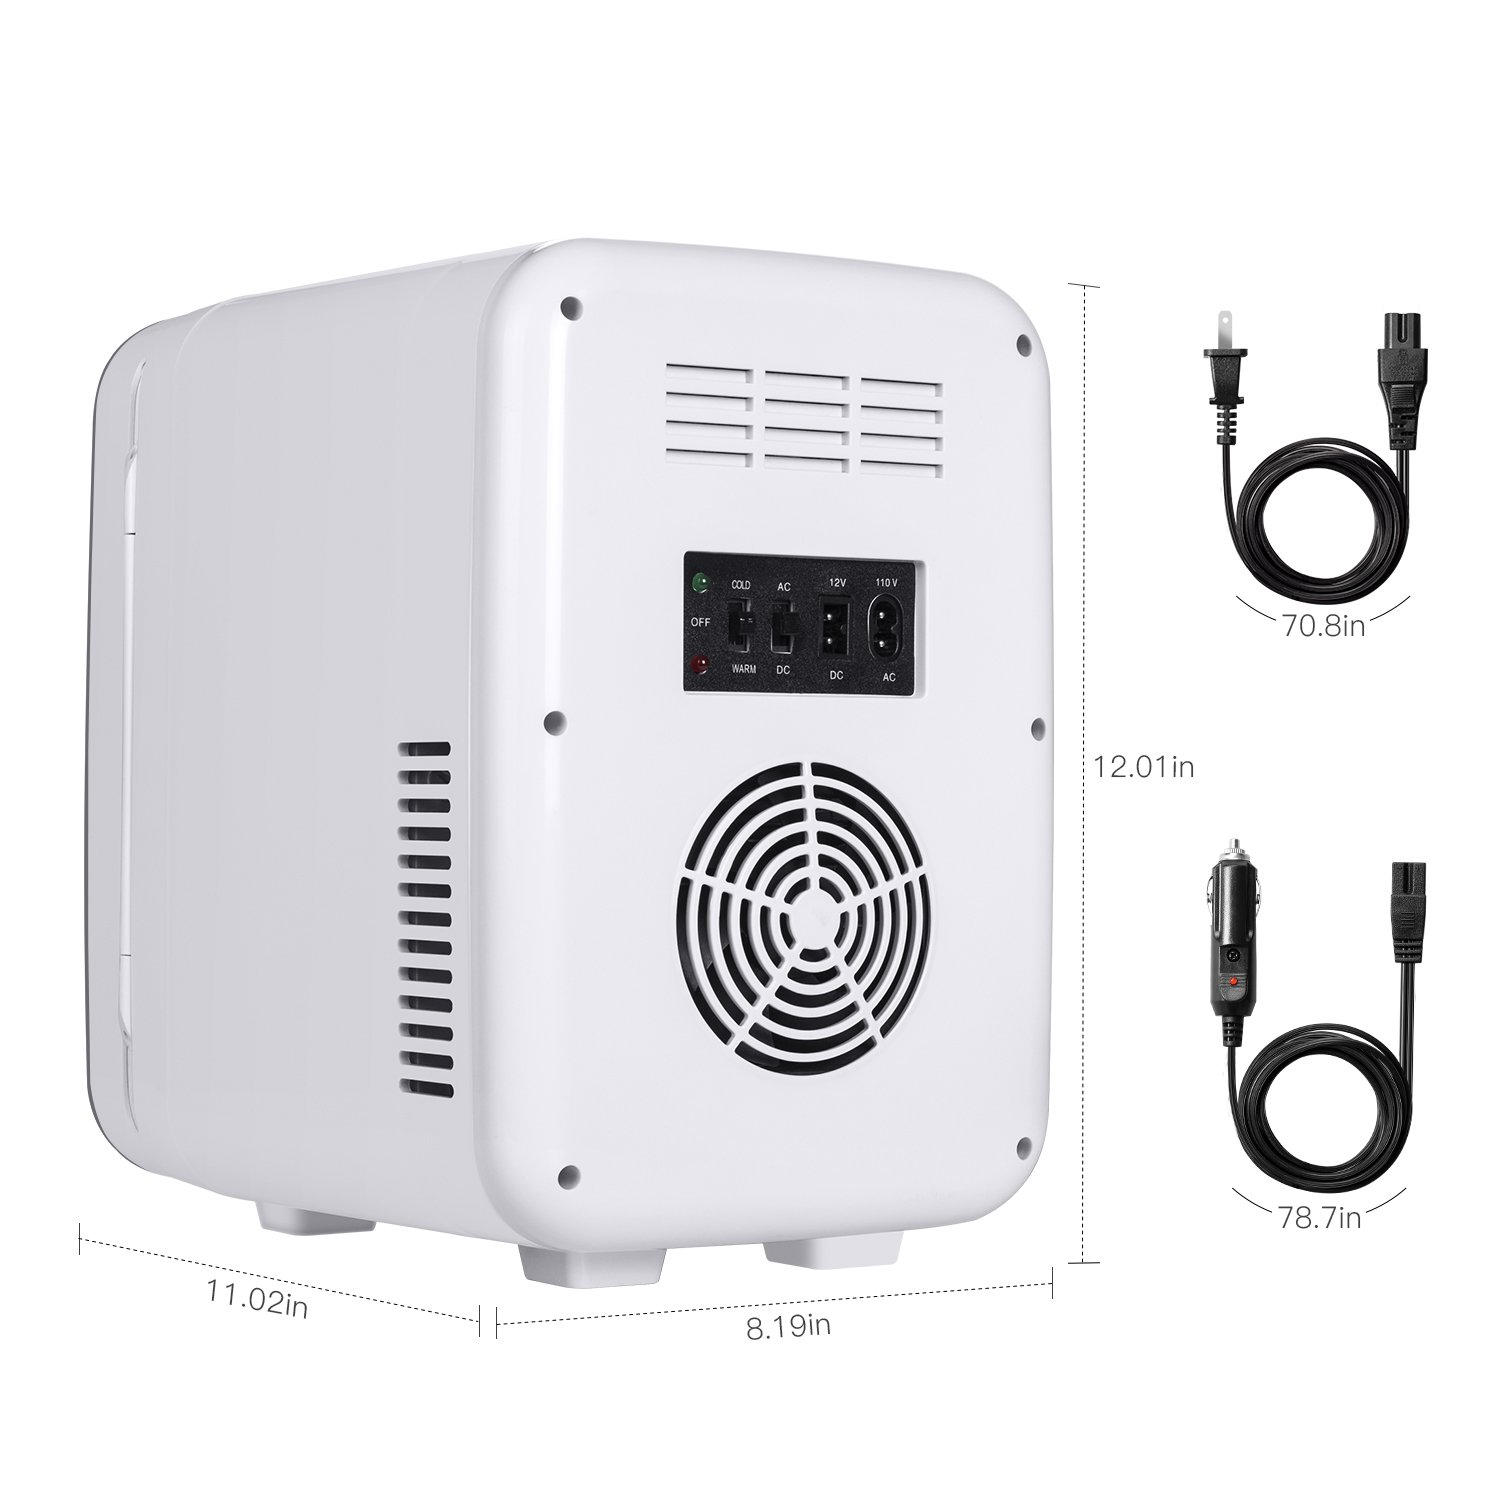 Kinverch Mini Fridge Electric Cooler and Warmer (6 Liter / 6 Can Plus) :110v AC / 12V DC Portable Thermoelectric System,,For Car /Home /Kichen/Junket/Outdoor for frinds / parents/yourself (Silver) by Kinverch (Image #2)